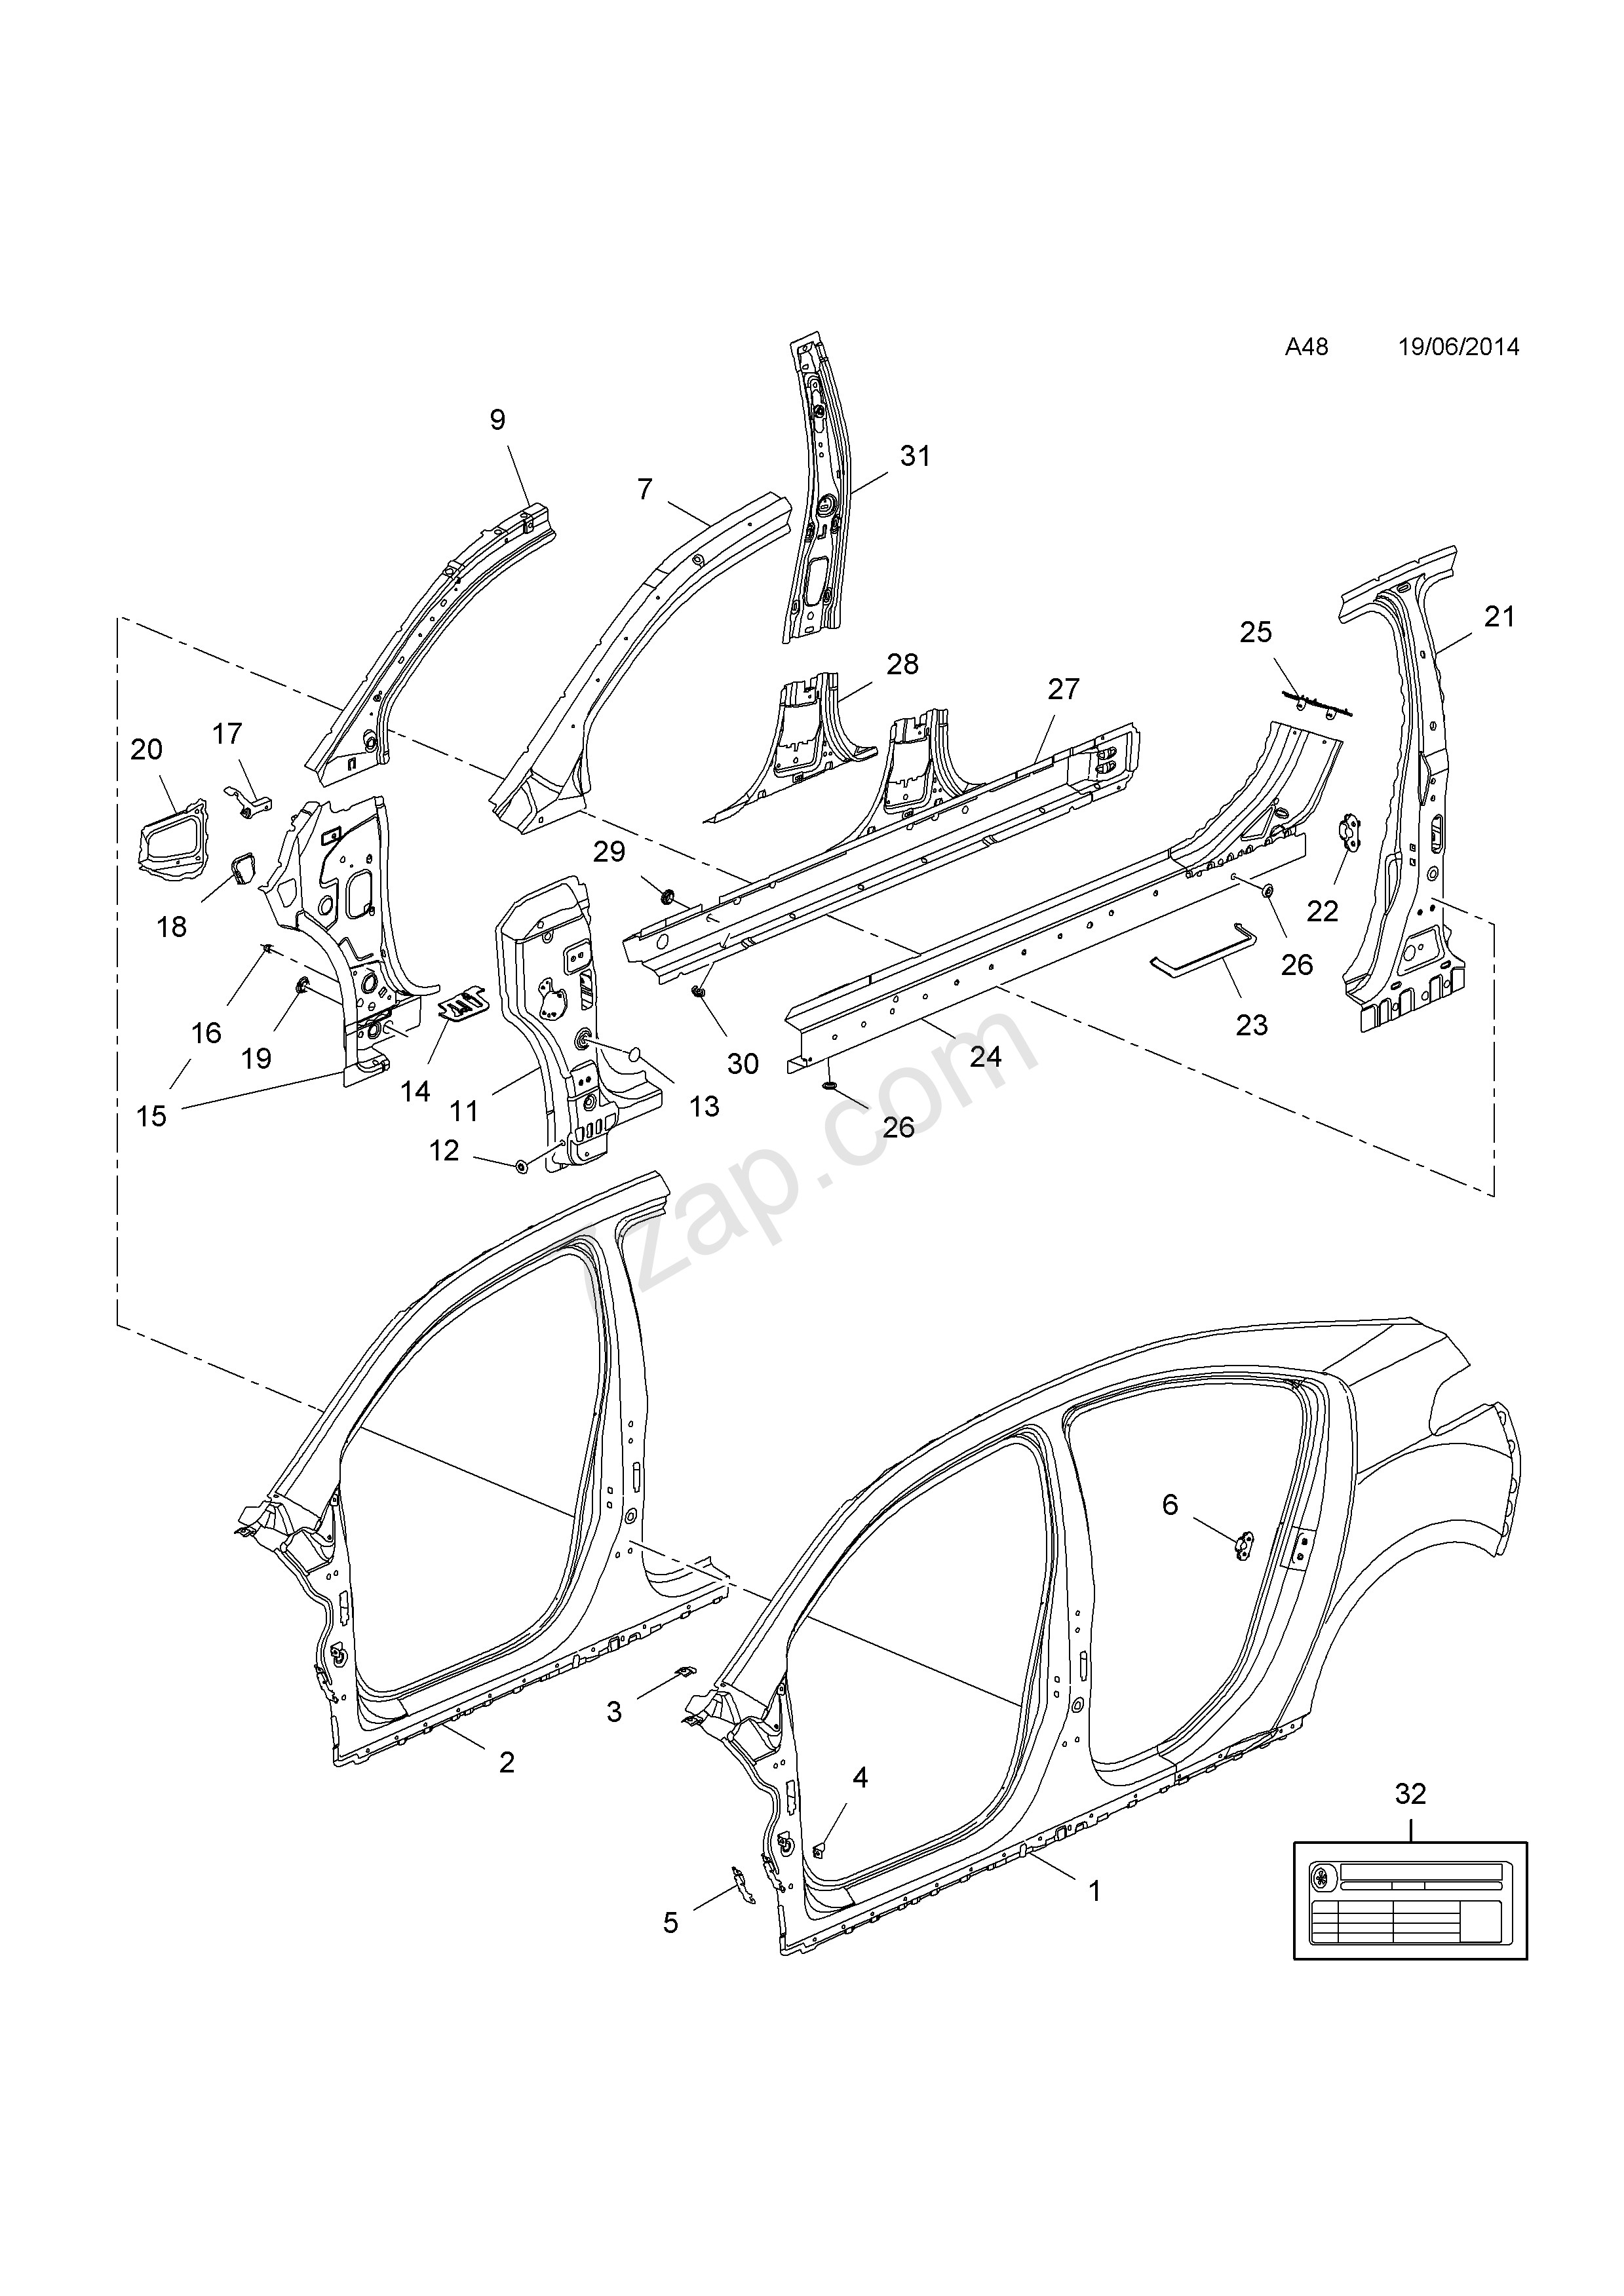 2000 lincoln town car fuse panel diagram free download car body panel diagram wiring diagram